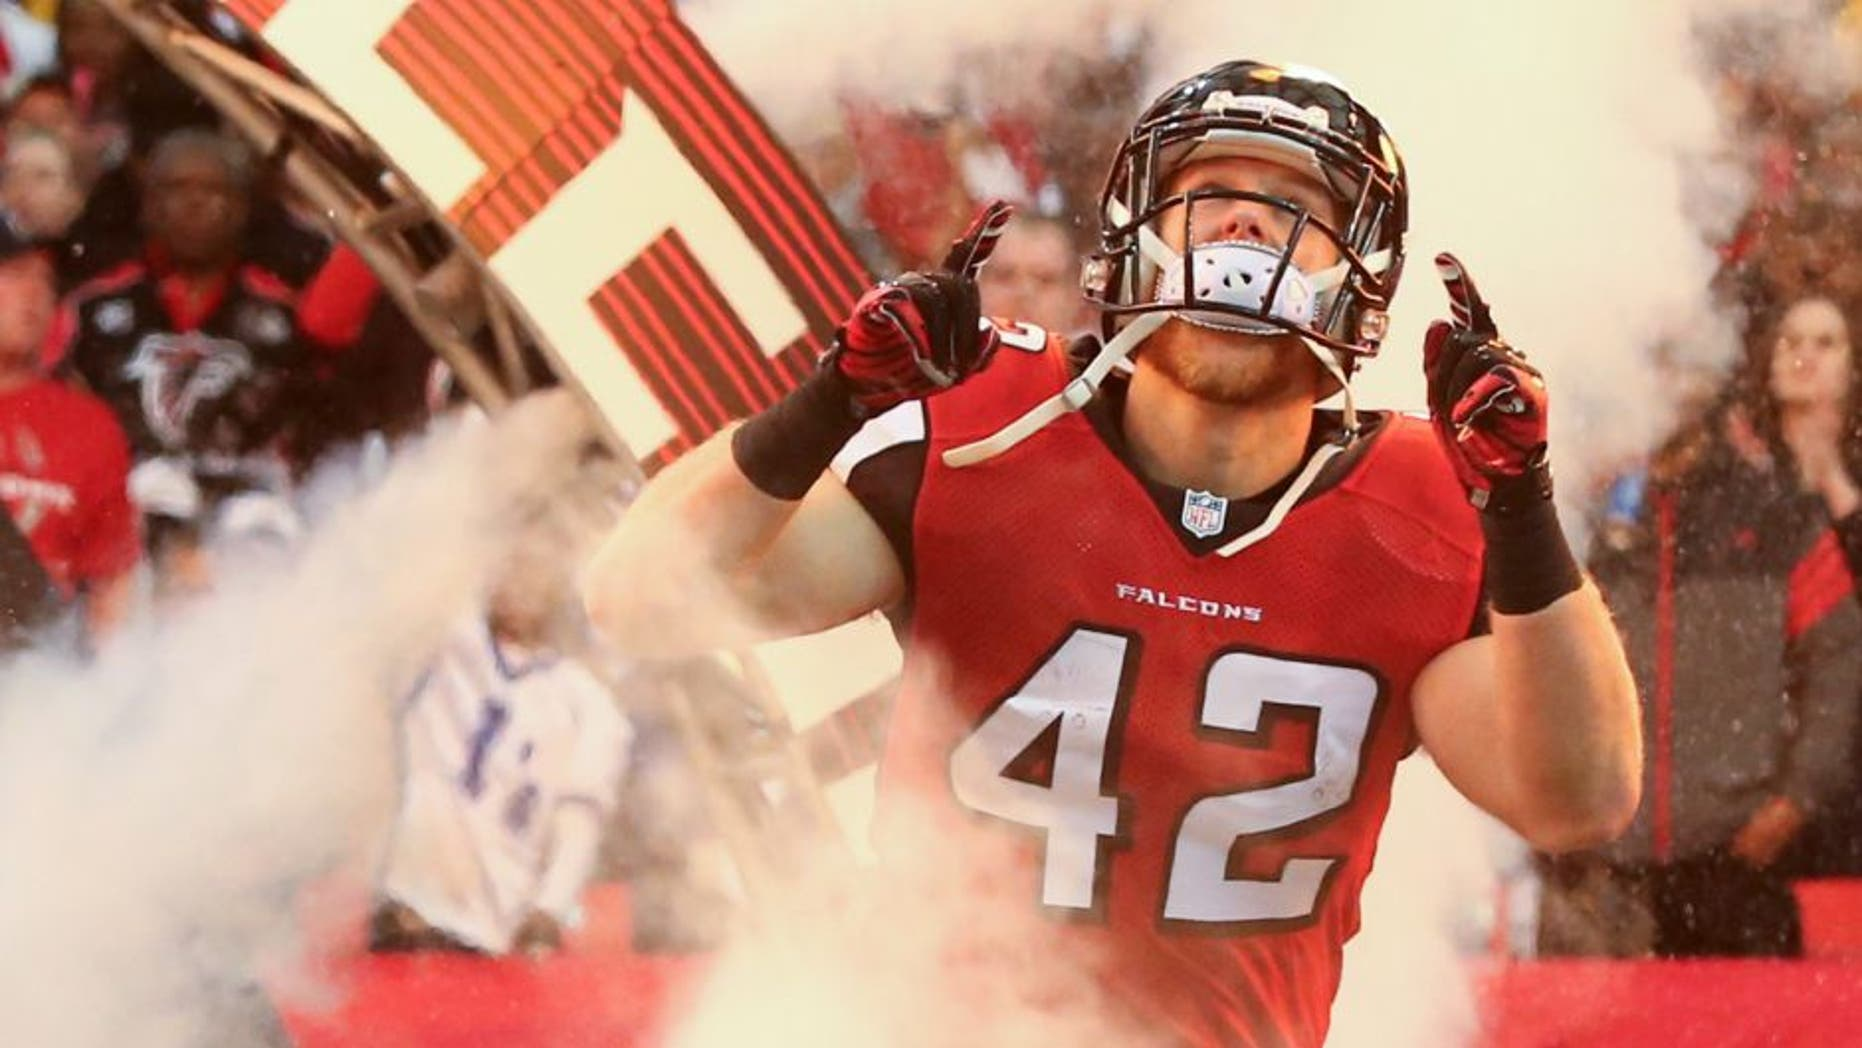 Dec 14, 2014; Atlanta, GA, USA; Atlanta Falcons fullback Patrick DiMarco (42) is introduced before their game against the Pittsburgh Steelers at the Georgia Dome. The Steelers won 27-20. Mandatory Credit: Jason Getz-USA TODAY Sports